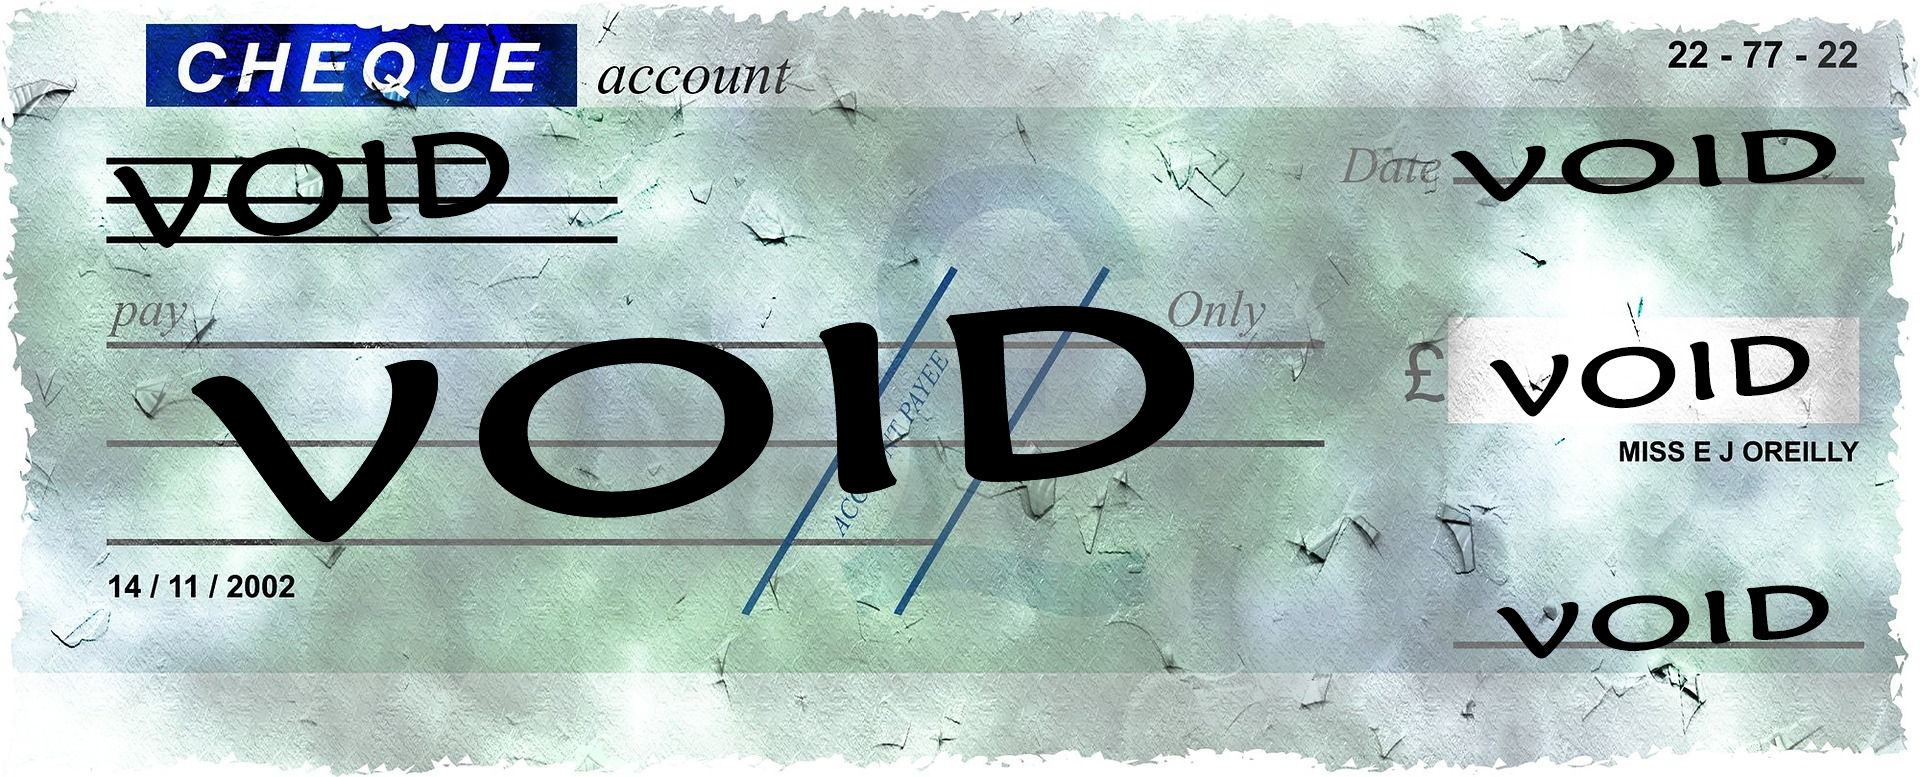 How To Void A Check Word Line Negotiable Instruments Void